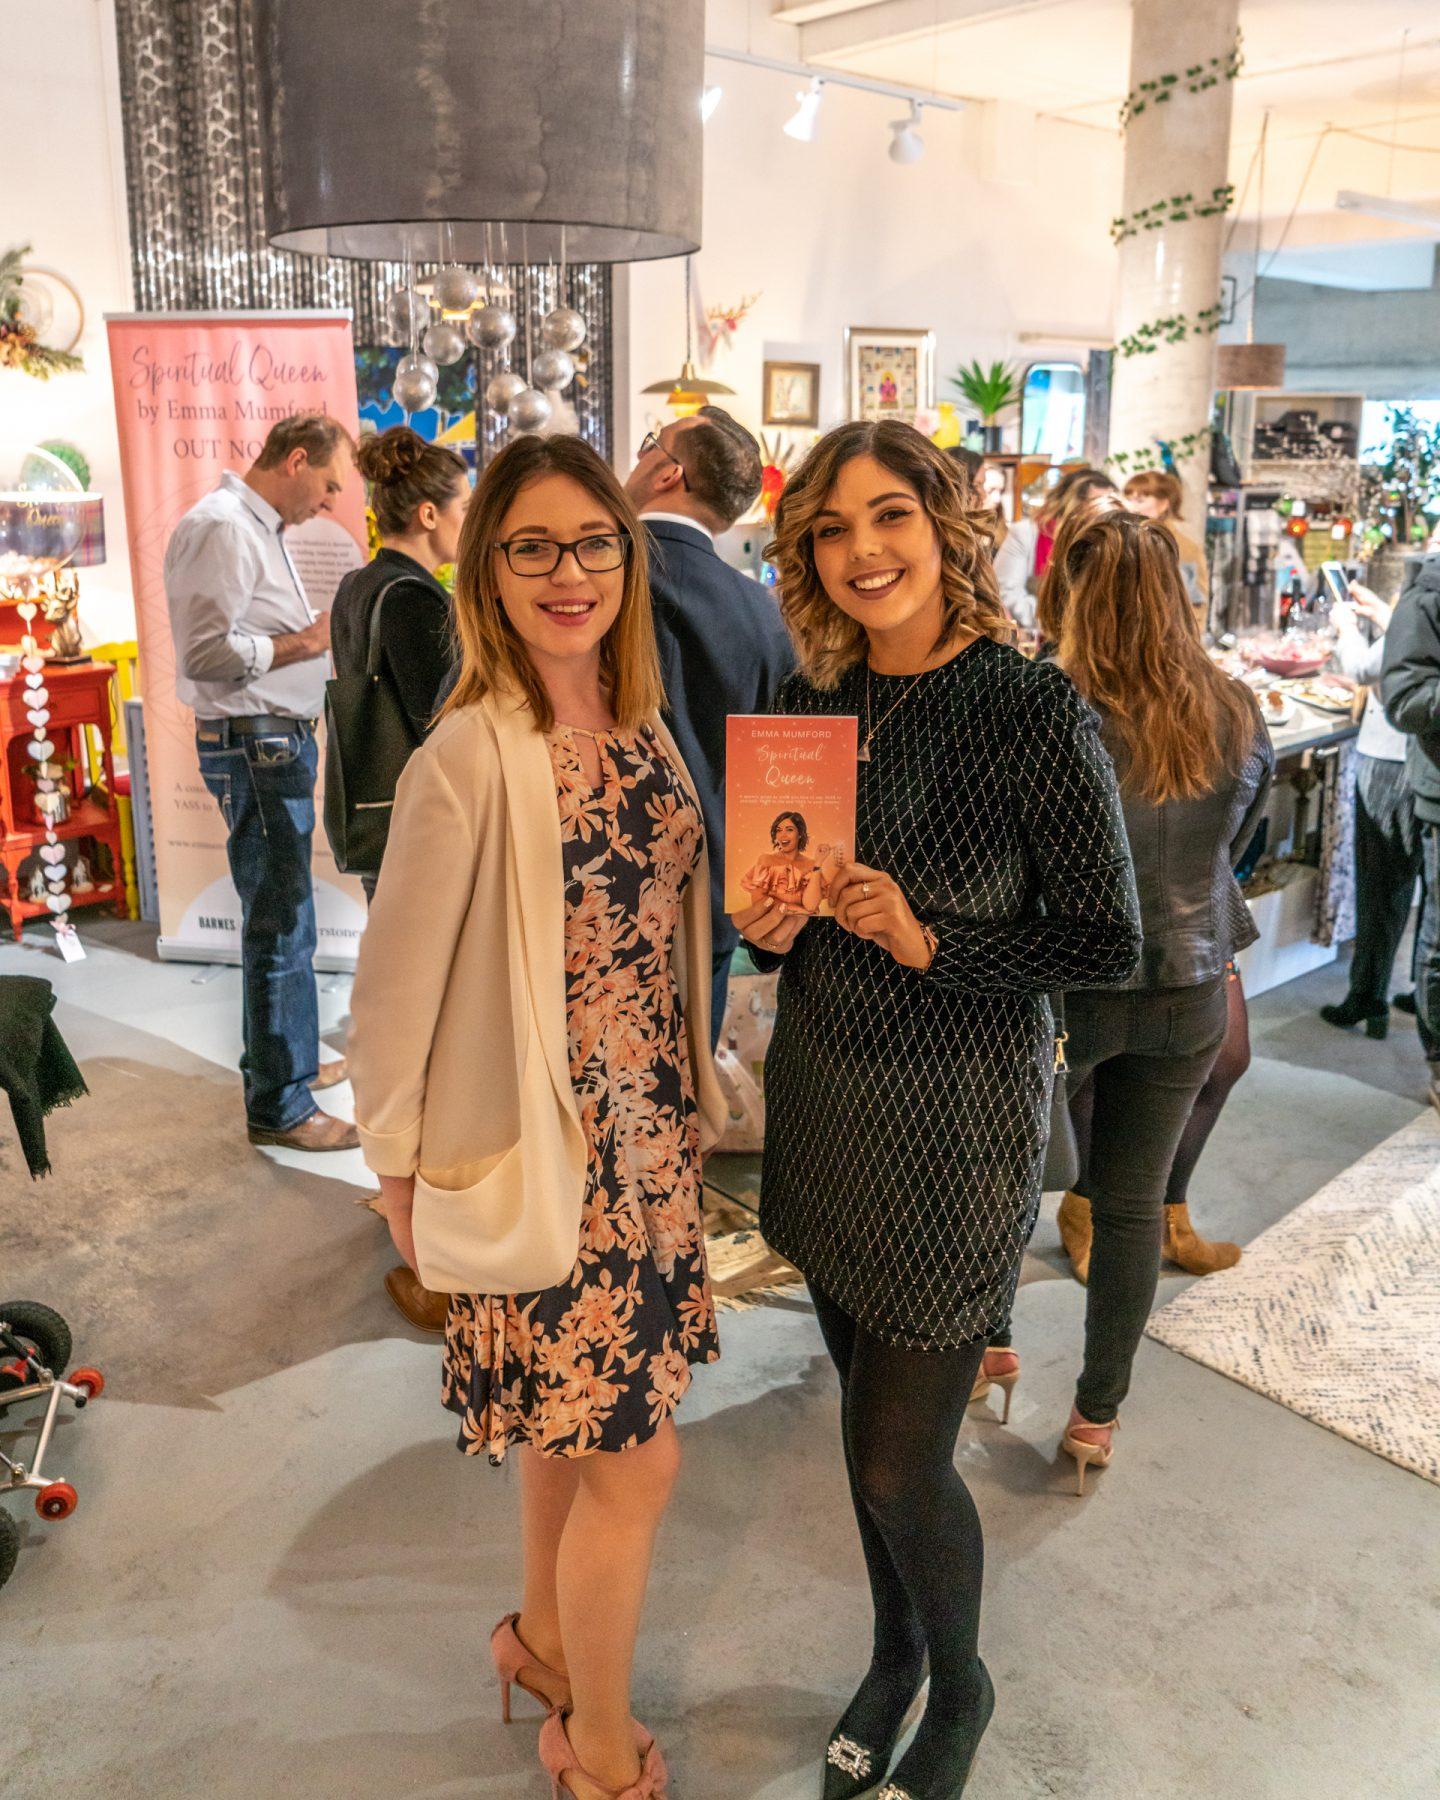 WHAT HAPPENED AT MY SPIRITUAL QUEEN BOOK LAUNCH PARTY